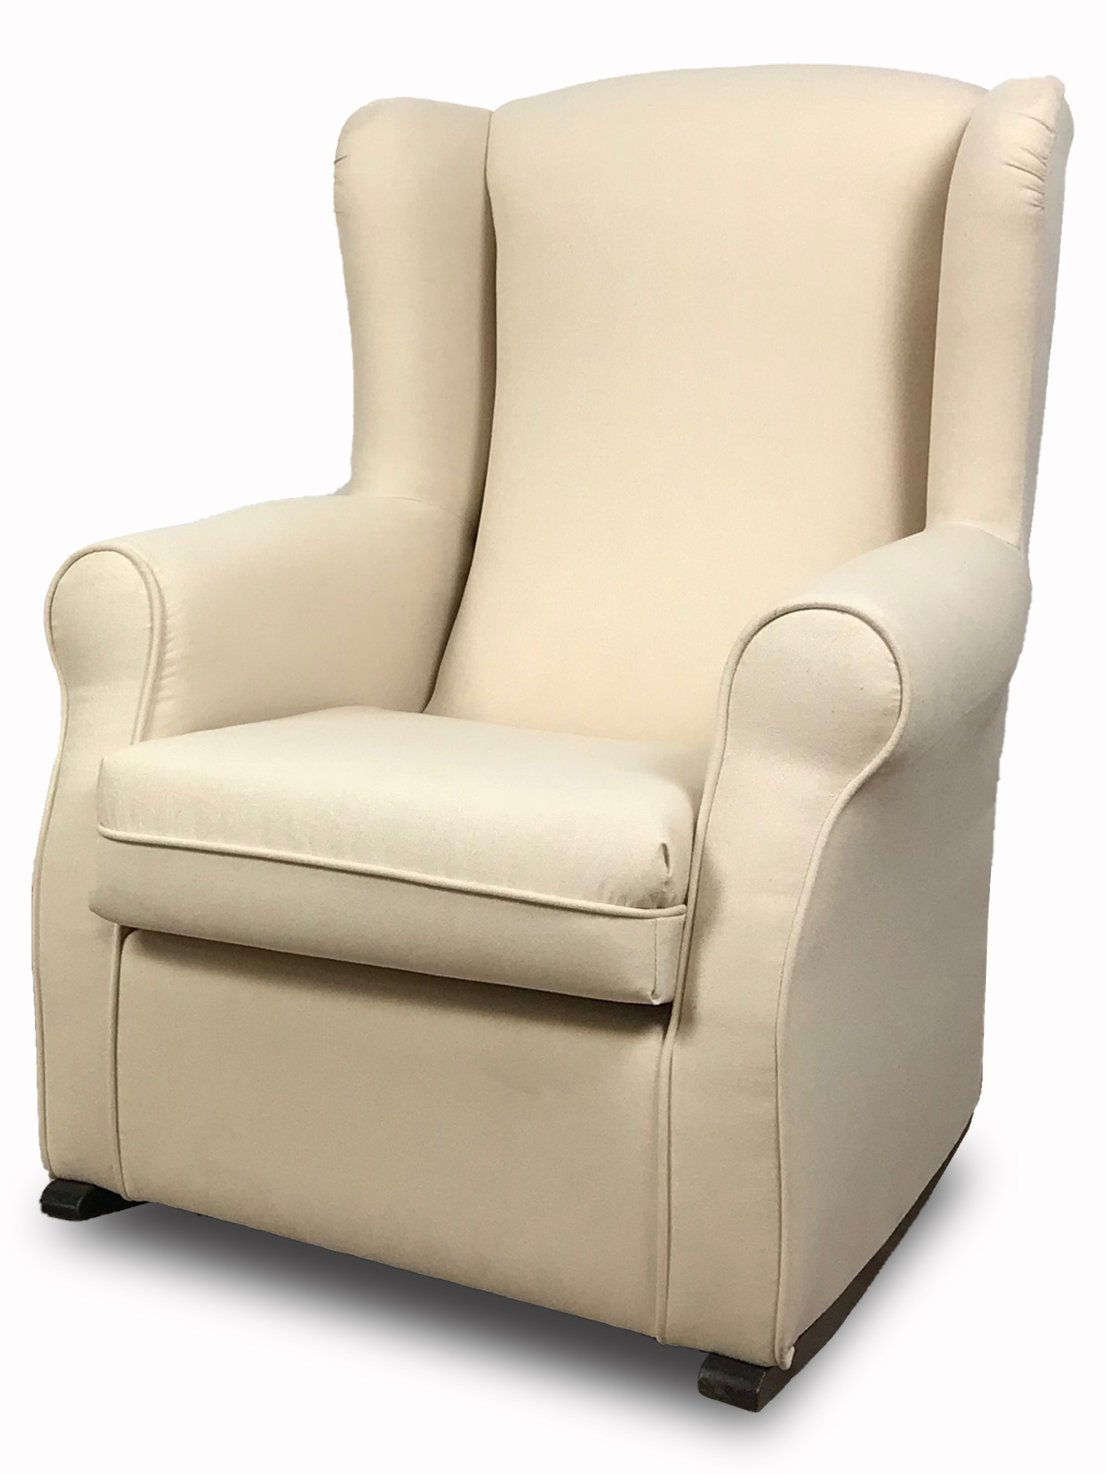 SuenosZzz-House Accent Rocking Chair. Perfect nursing chair. Upholstery fabric Grey Chenille. Measurements: 102 x 76 x 74.